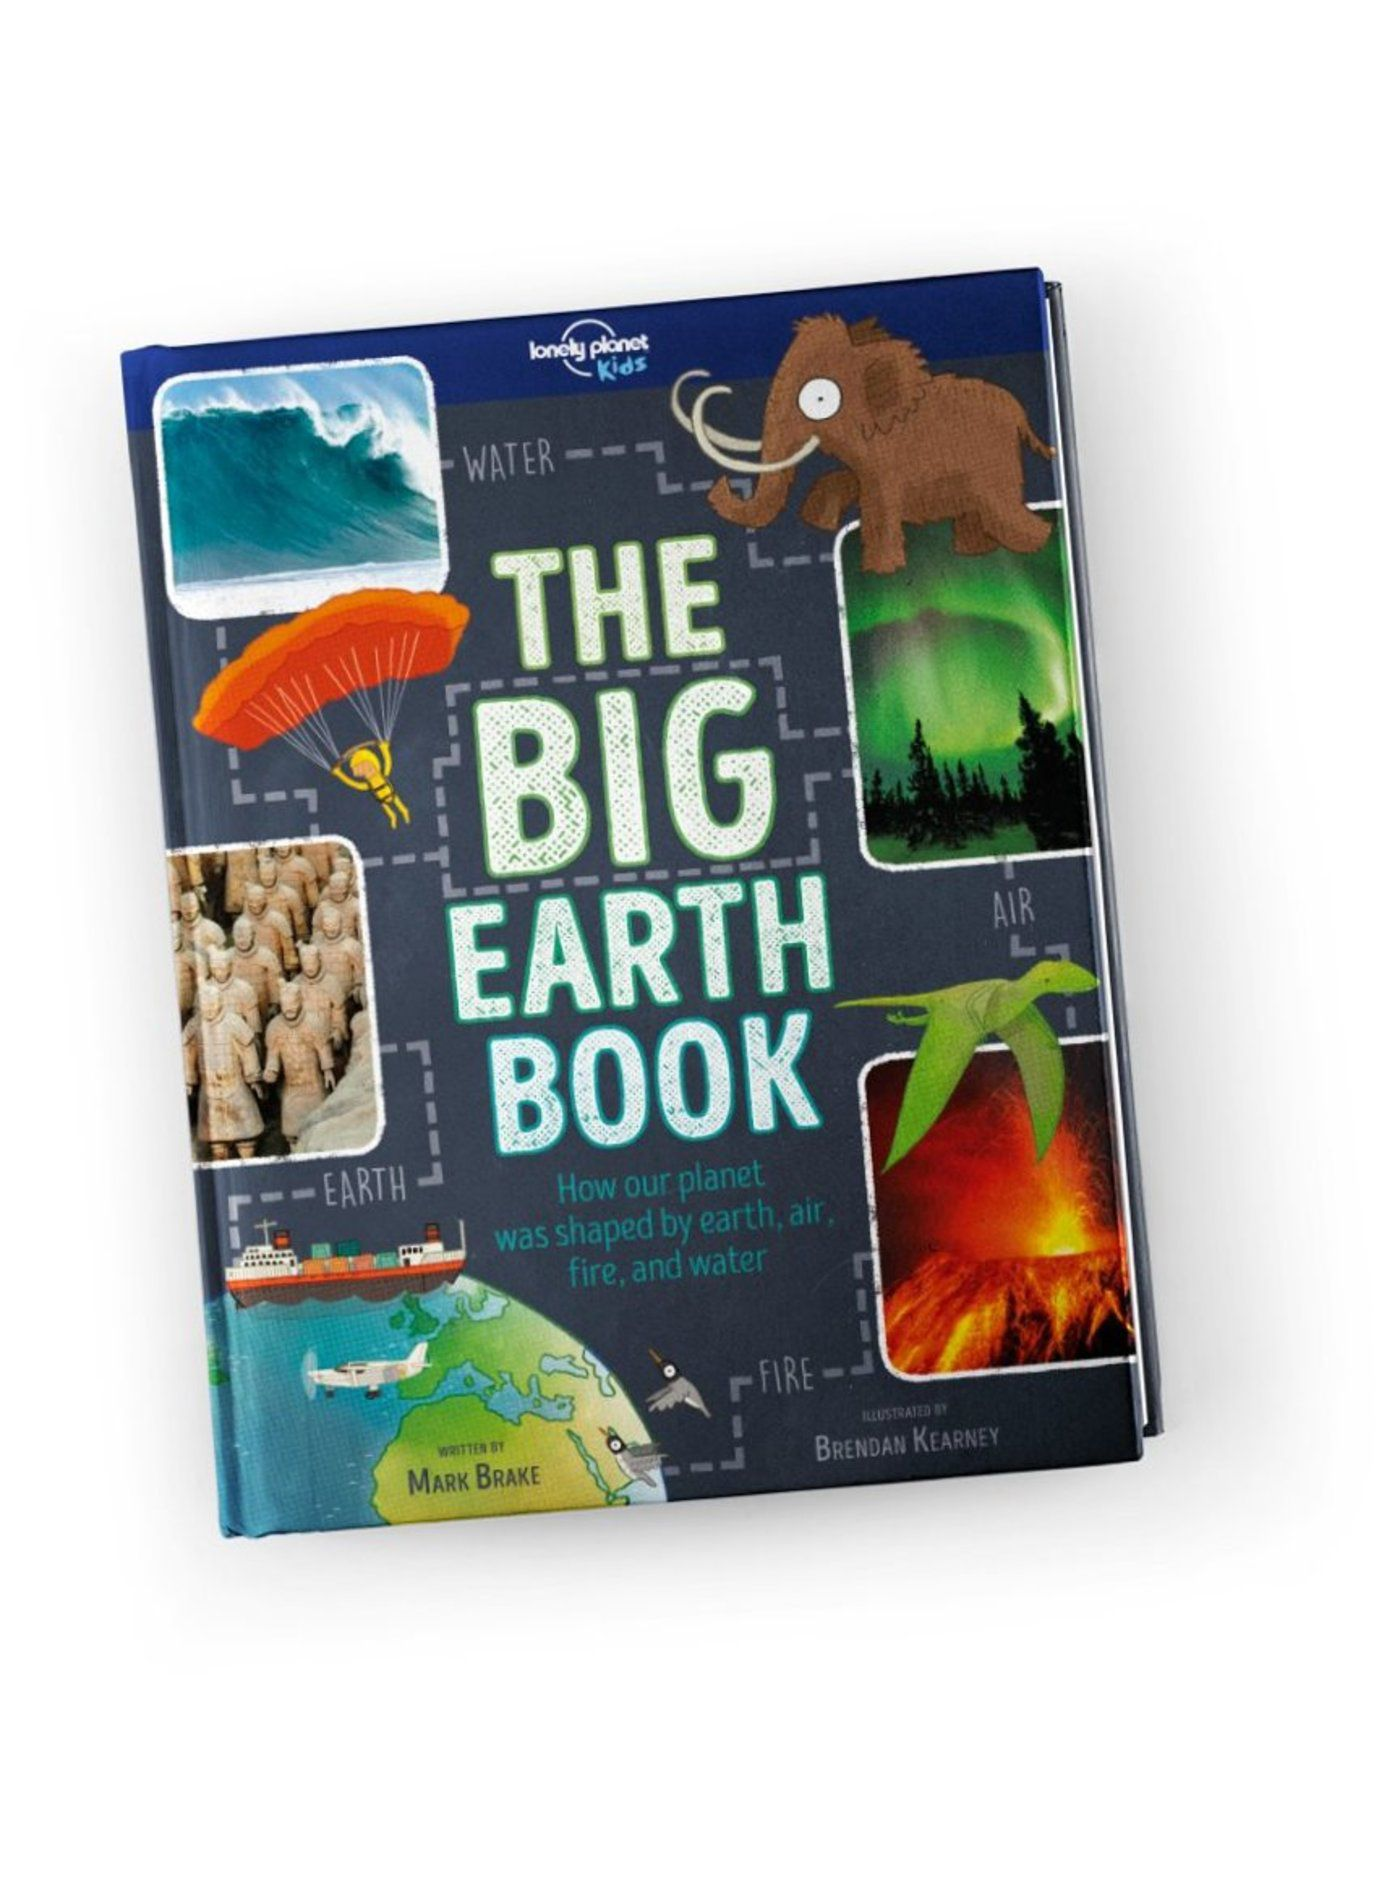 The Big Earth Book (North and South America edition)